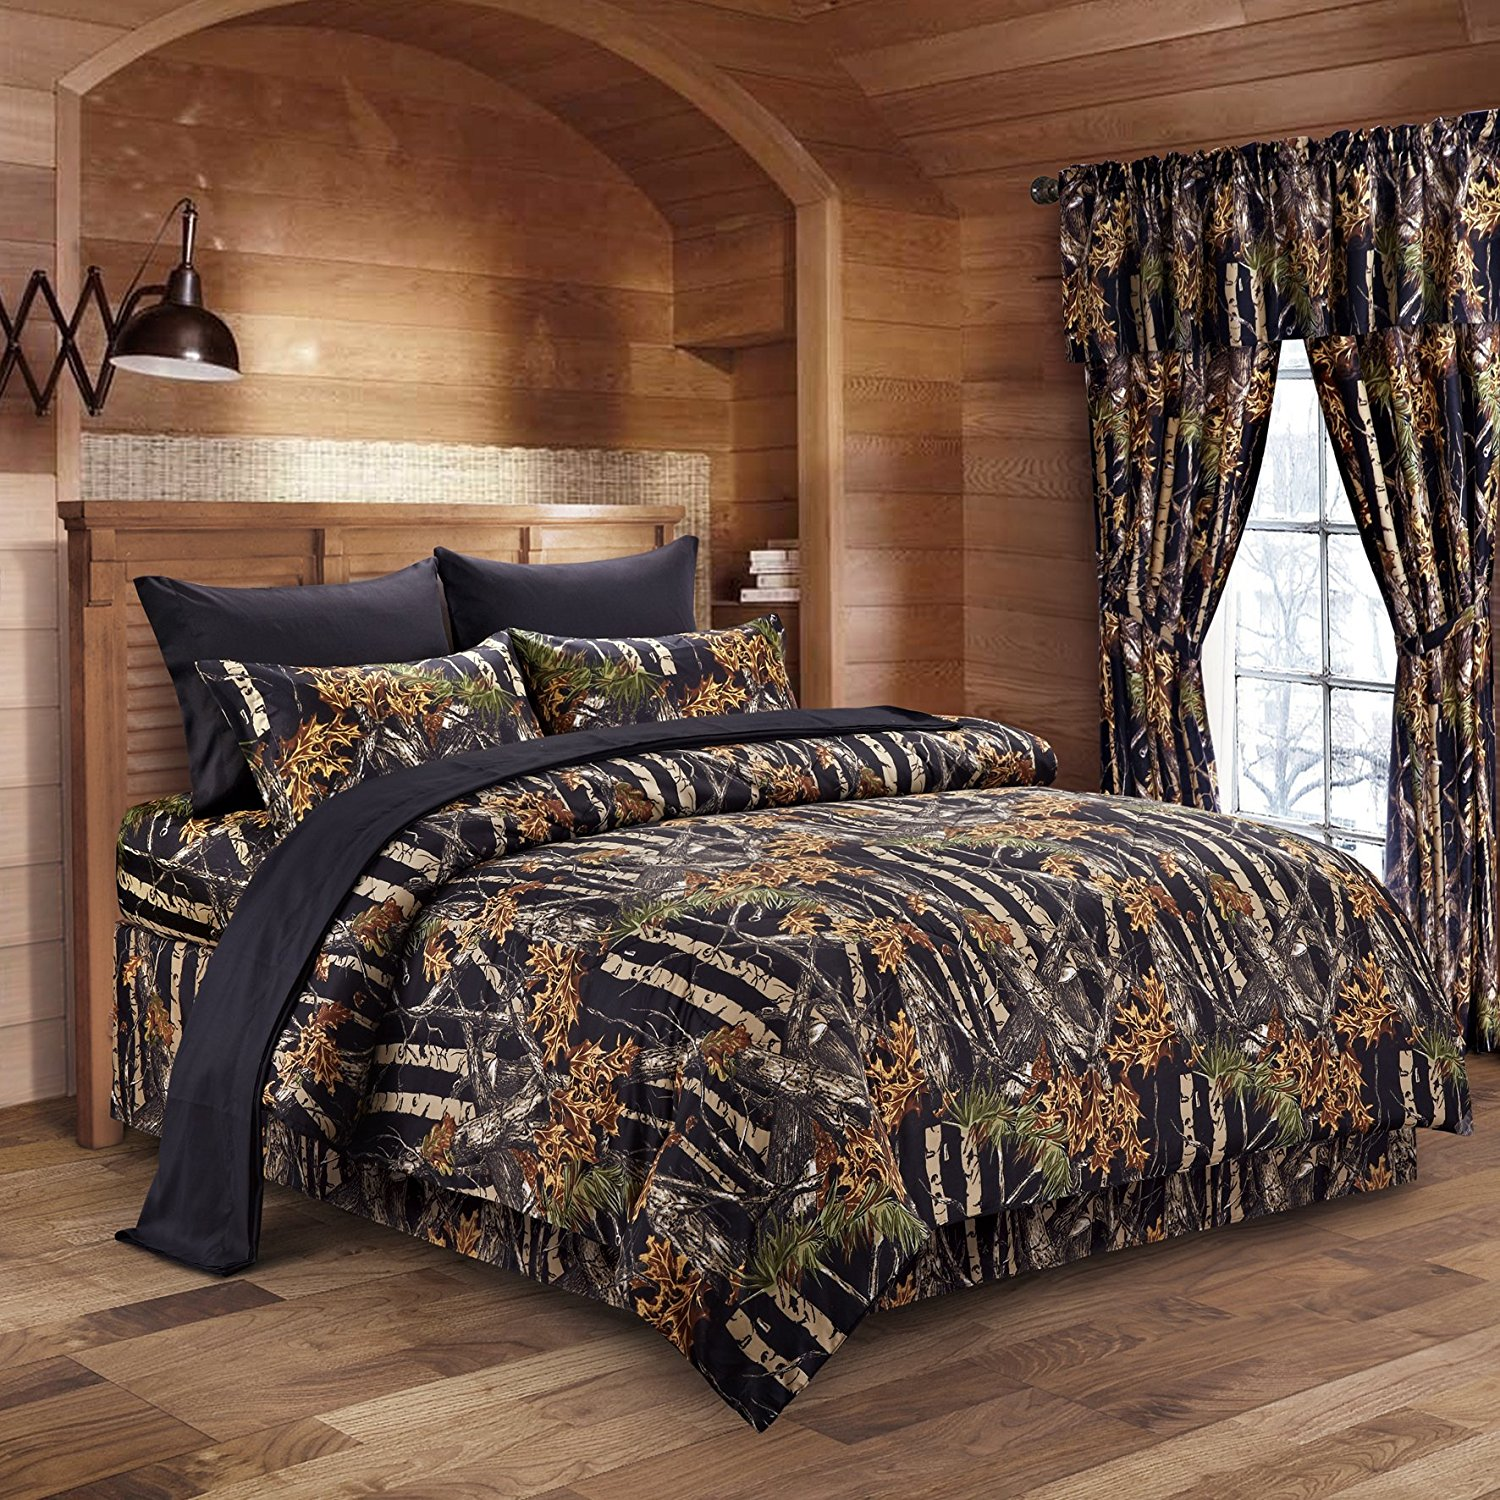 The Woods Black Camouflage Full 8pc Premium Luxury Comforter, Sheet, Pillowcases, and Bed Skirt Set by Regal Comfort Camo Bedding Set For Hunters Cabin or Rustic Lodge Teens Boys and Girls